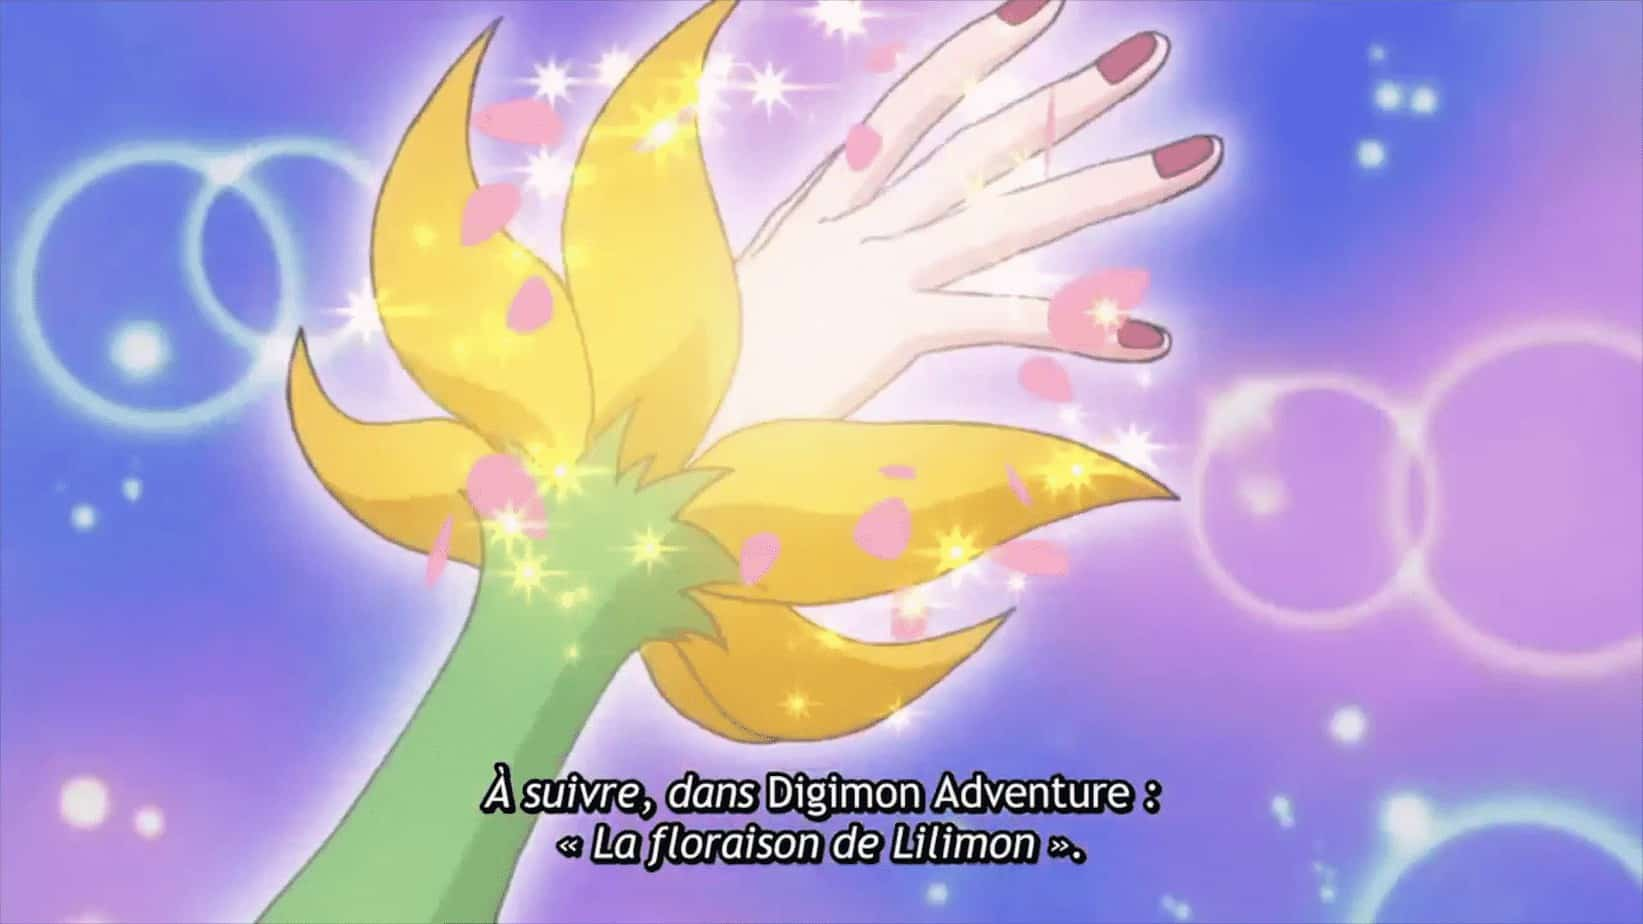 Digimon Adventure (2020) 12 Vostfr - la floraison de lilimon 1